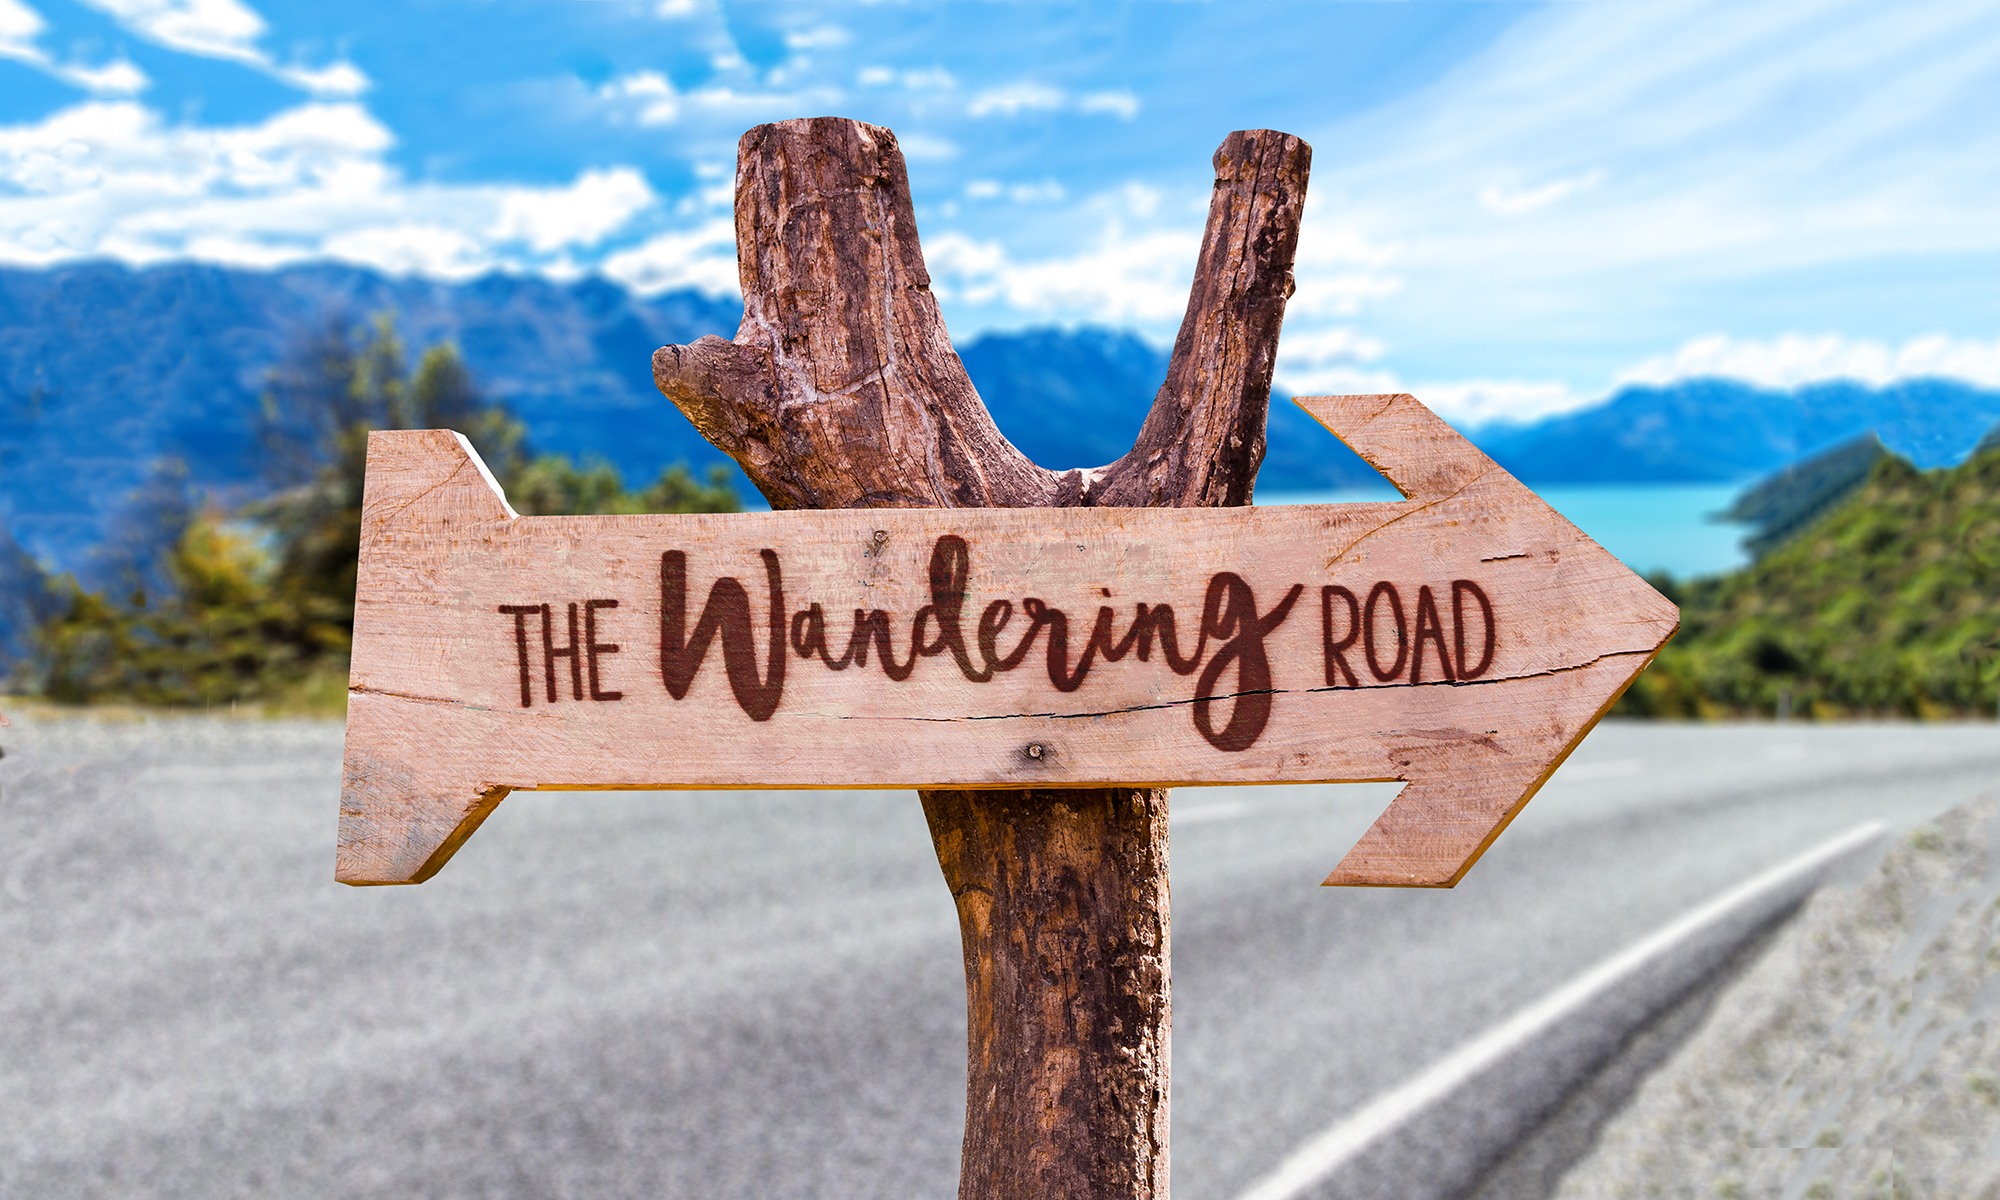 The Wandering Road